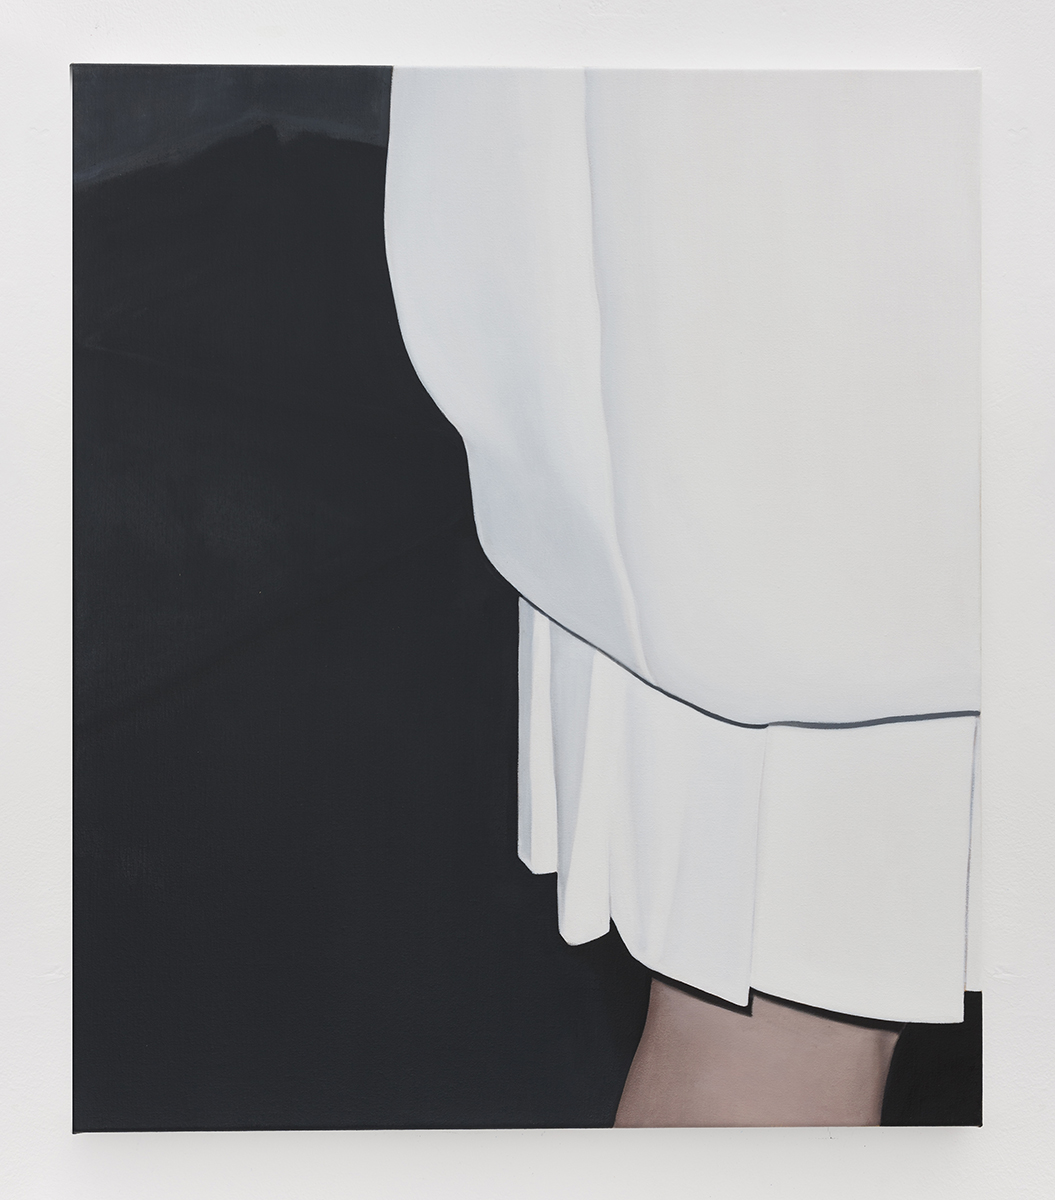 White Dress I | 2018 | oil on linen | 70 x 60 cm | 27.6 x 23.6 in | Private Collection | Photo Lee Welch